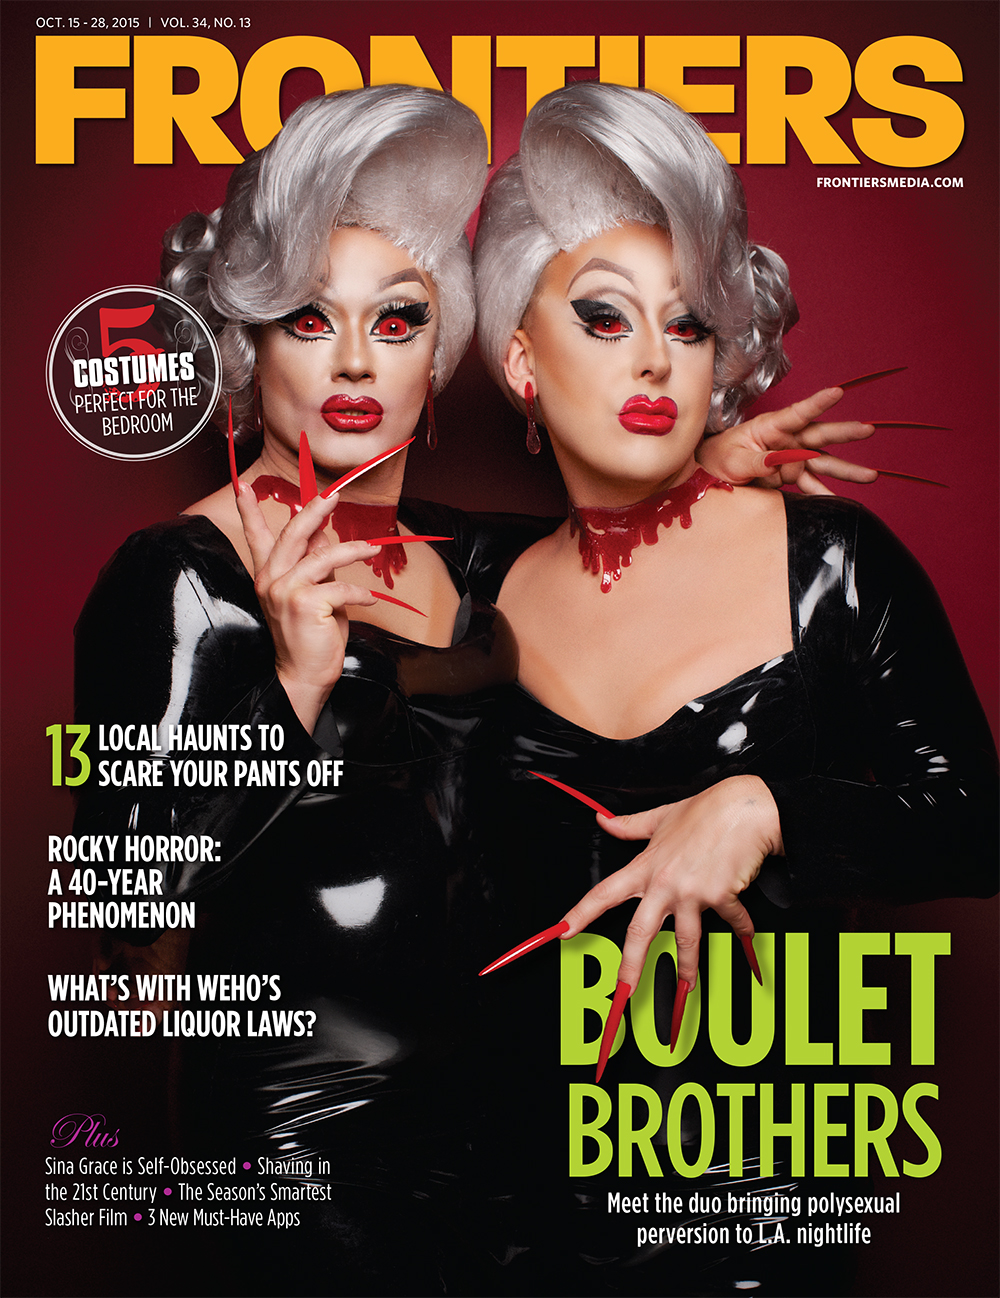 Frontiers Boulets cover.jpg